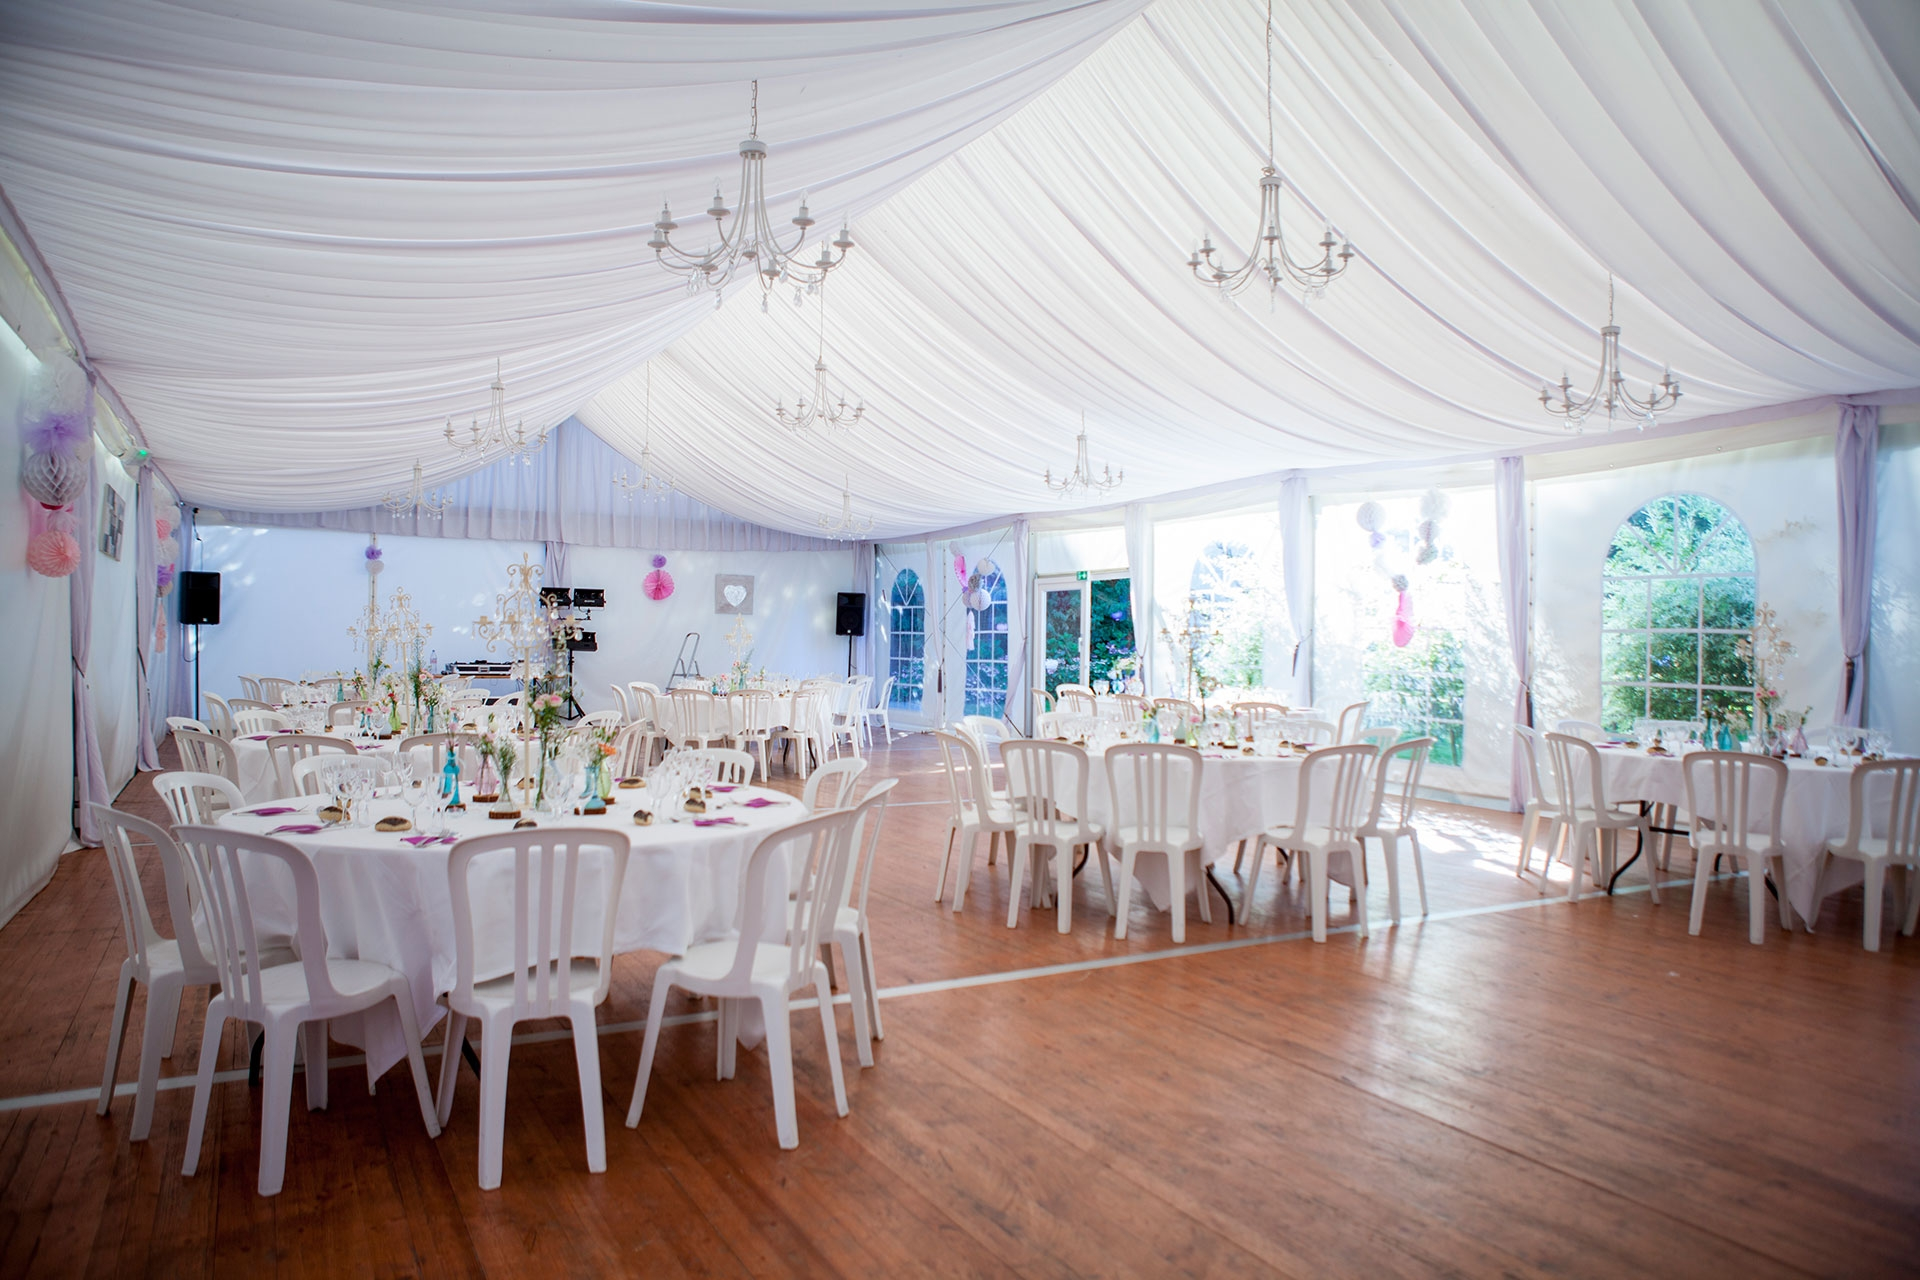 particuliers-evenements-mariages-oui-france&philippe-66